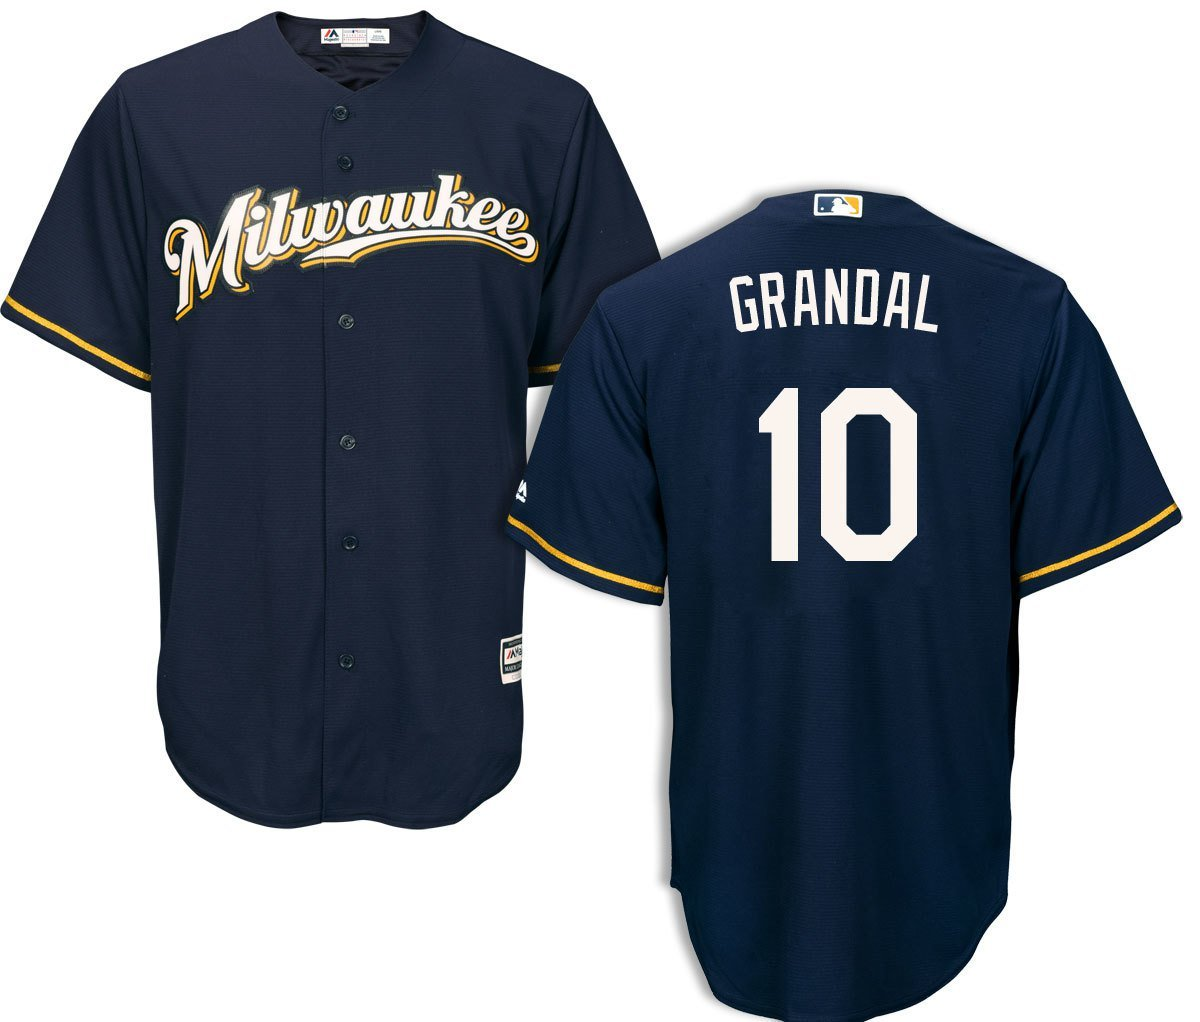 62afe57cae9 Men's Milwaukee Brewers #10 Yasmani Grandal Navy Alternate Cool Base  Basetall Jersey